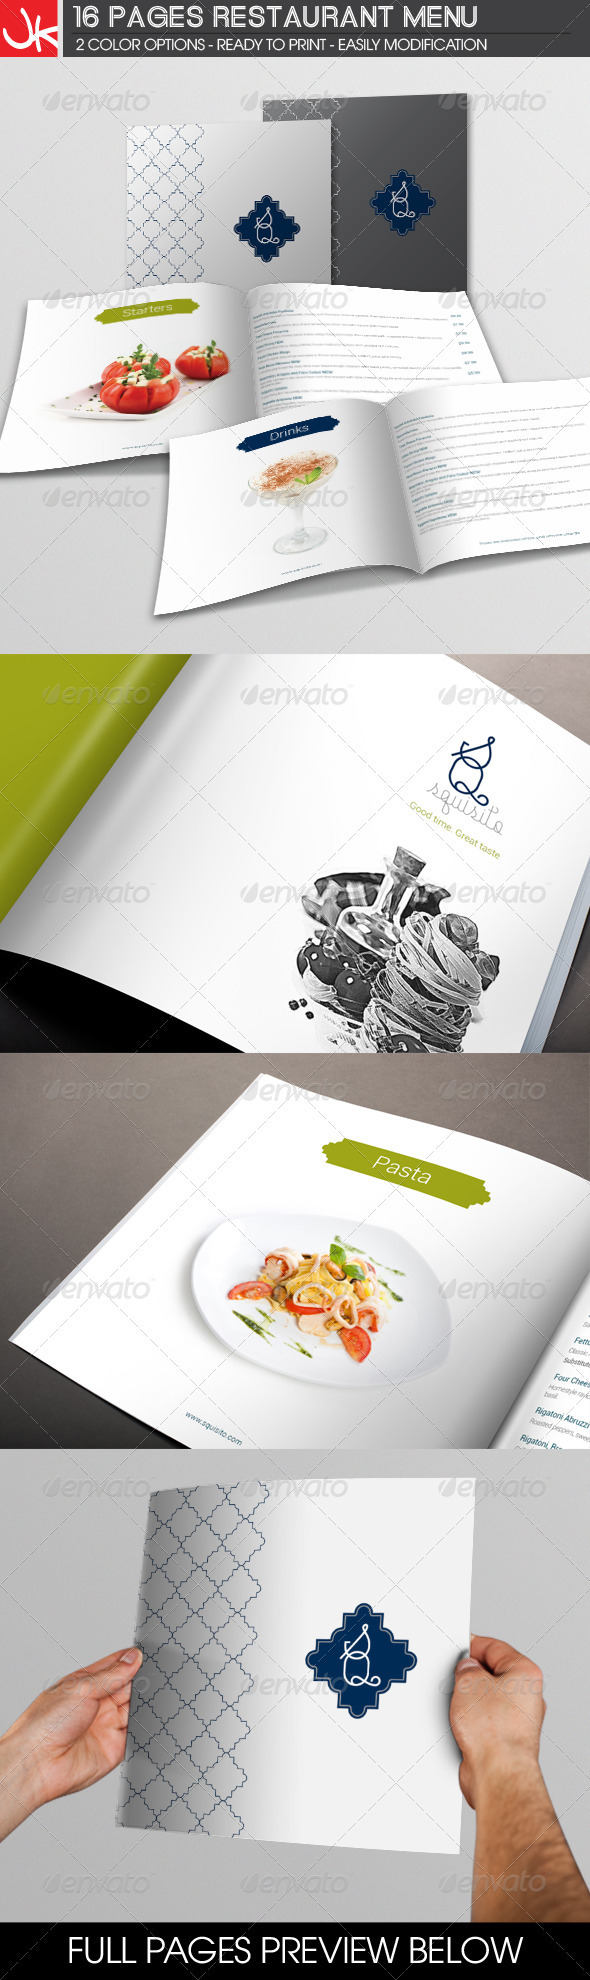 16 Pages Restaurant Menu - Food Menus Print Templates